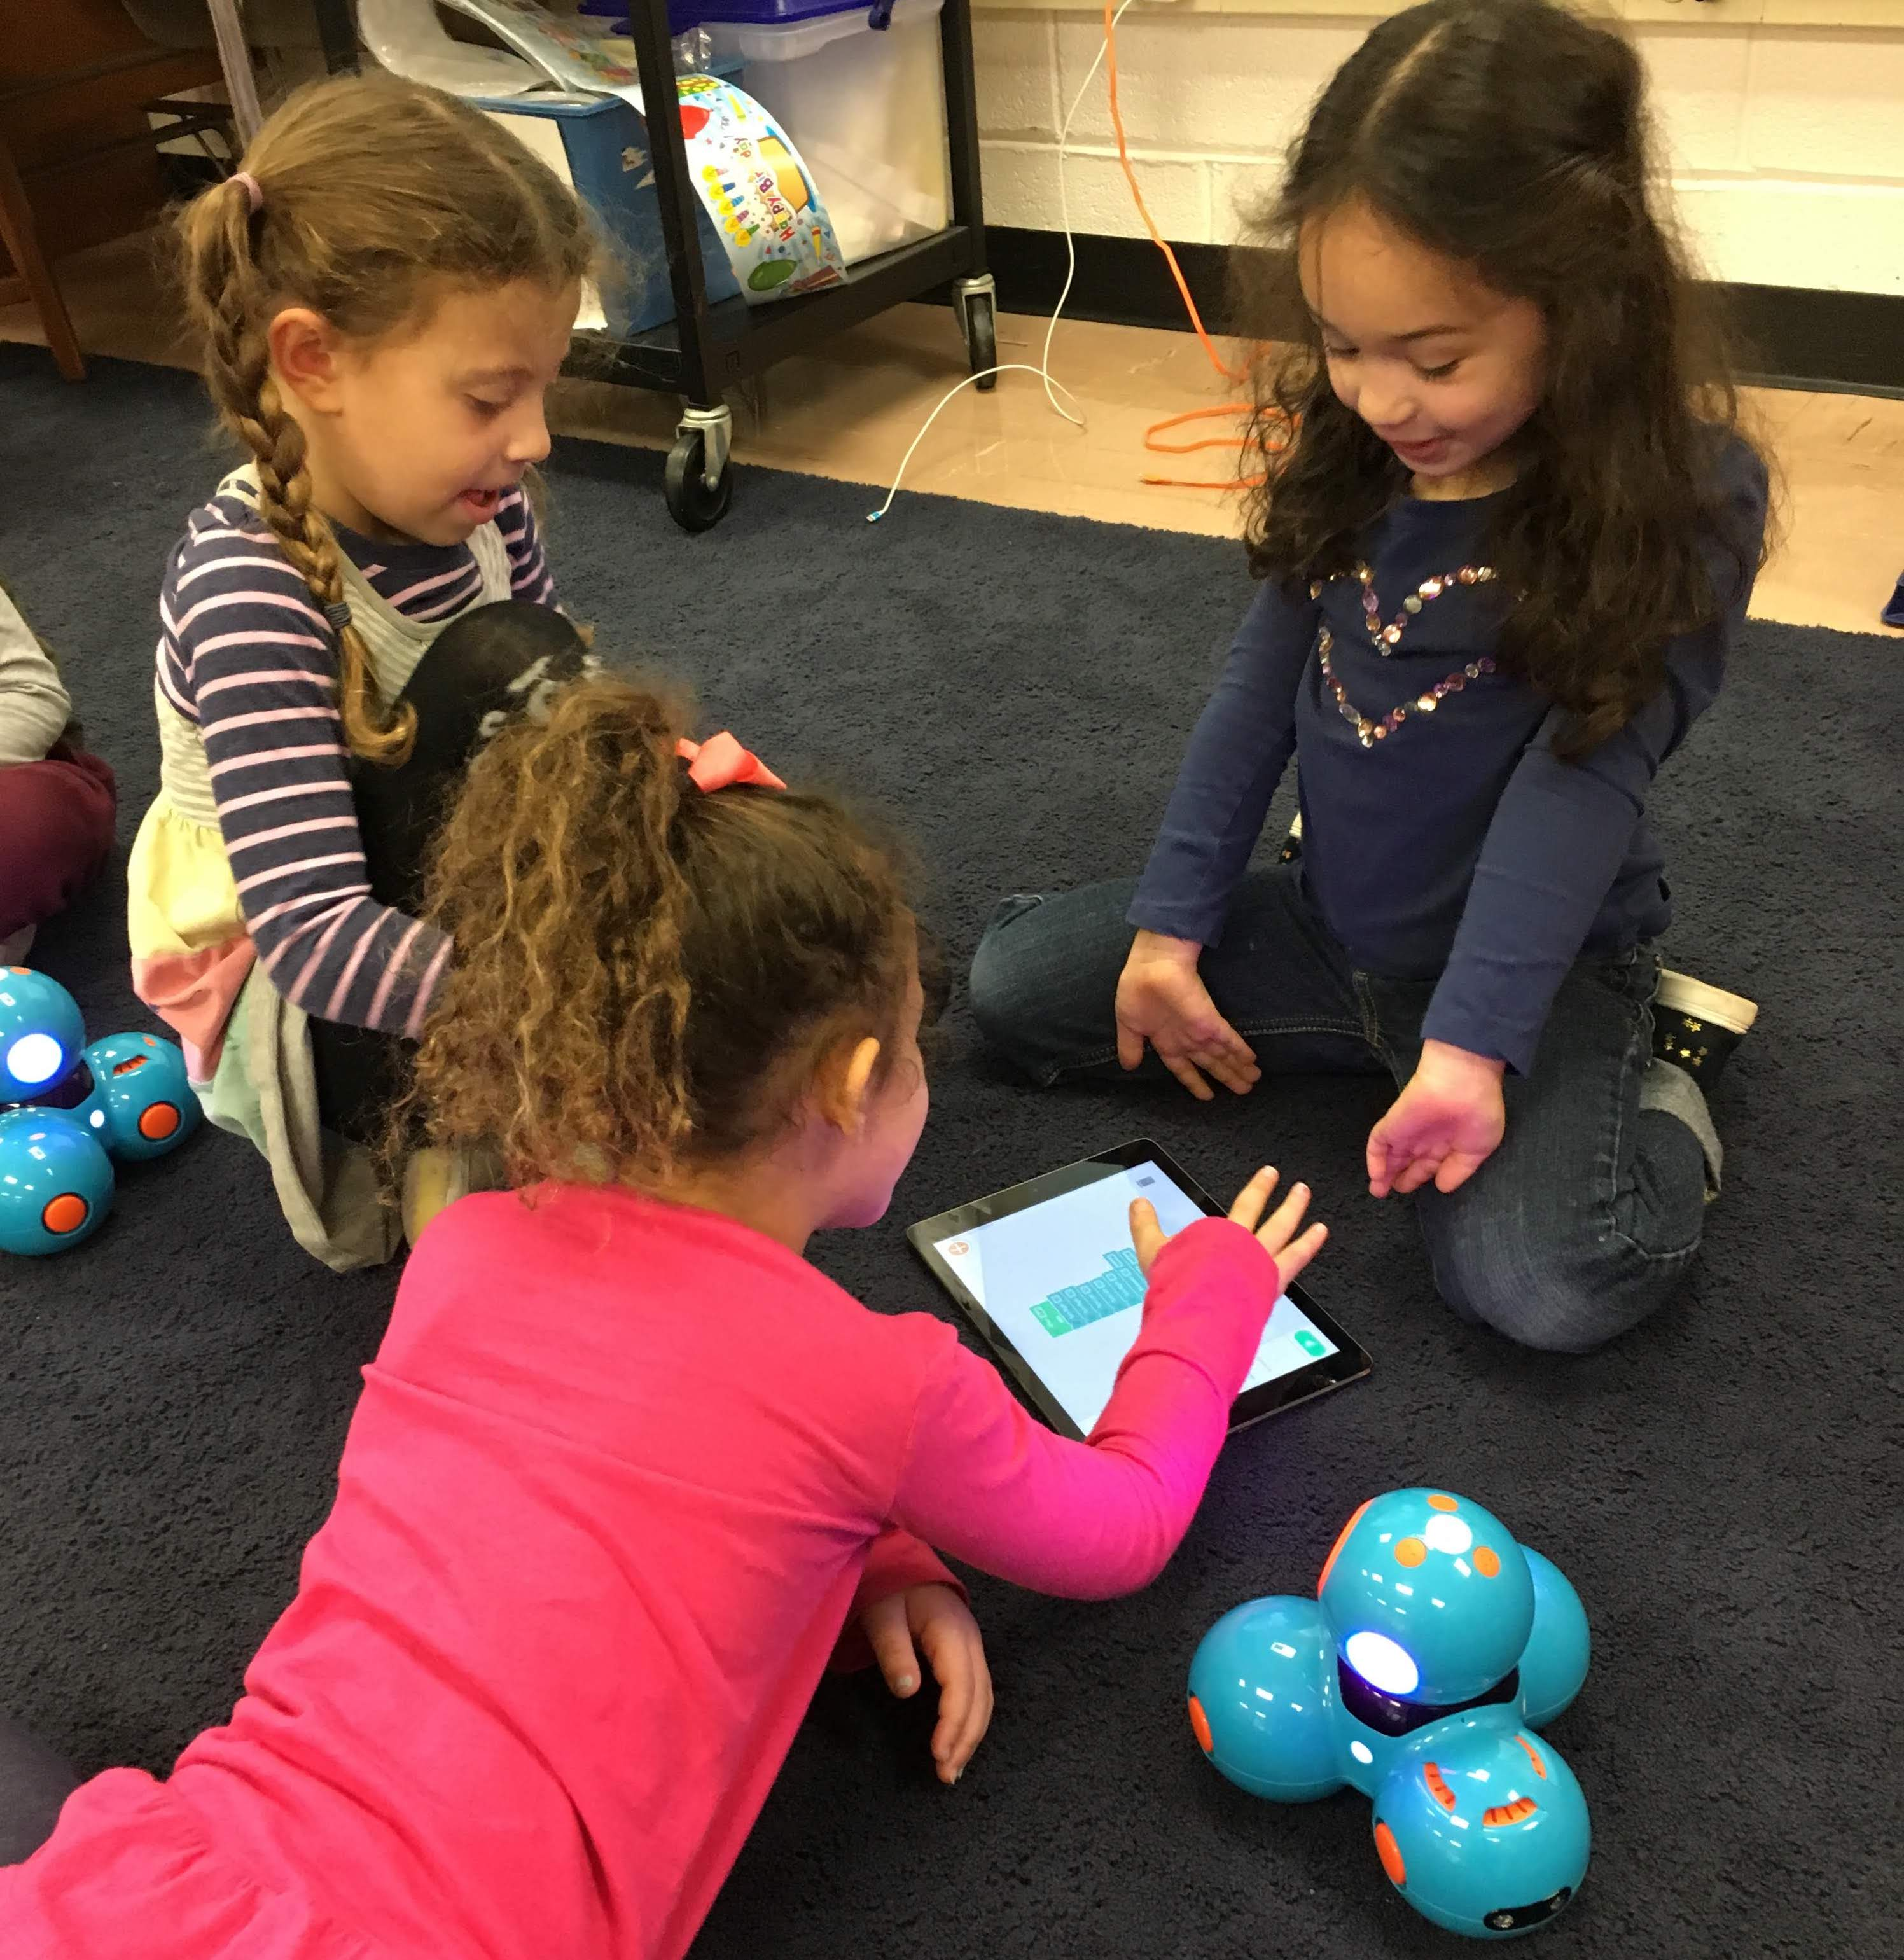 Girls Programming Dash 1